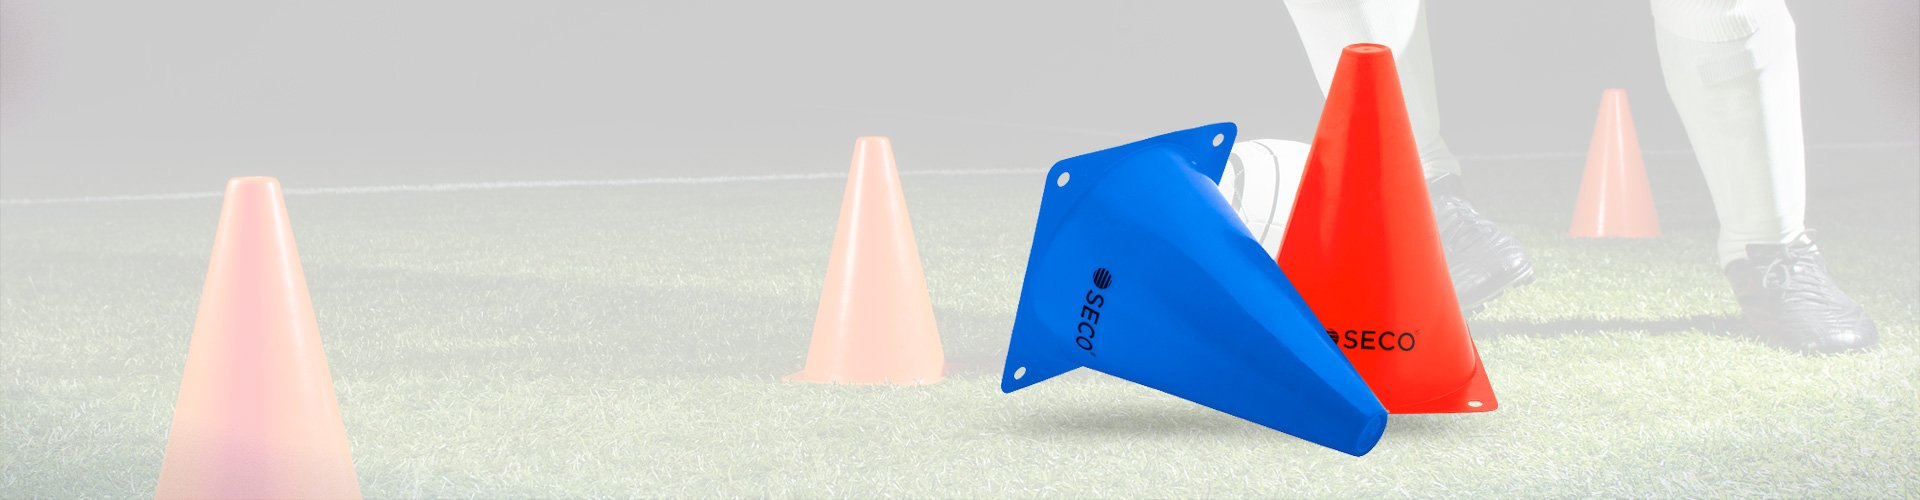 Cones for training